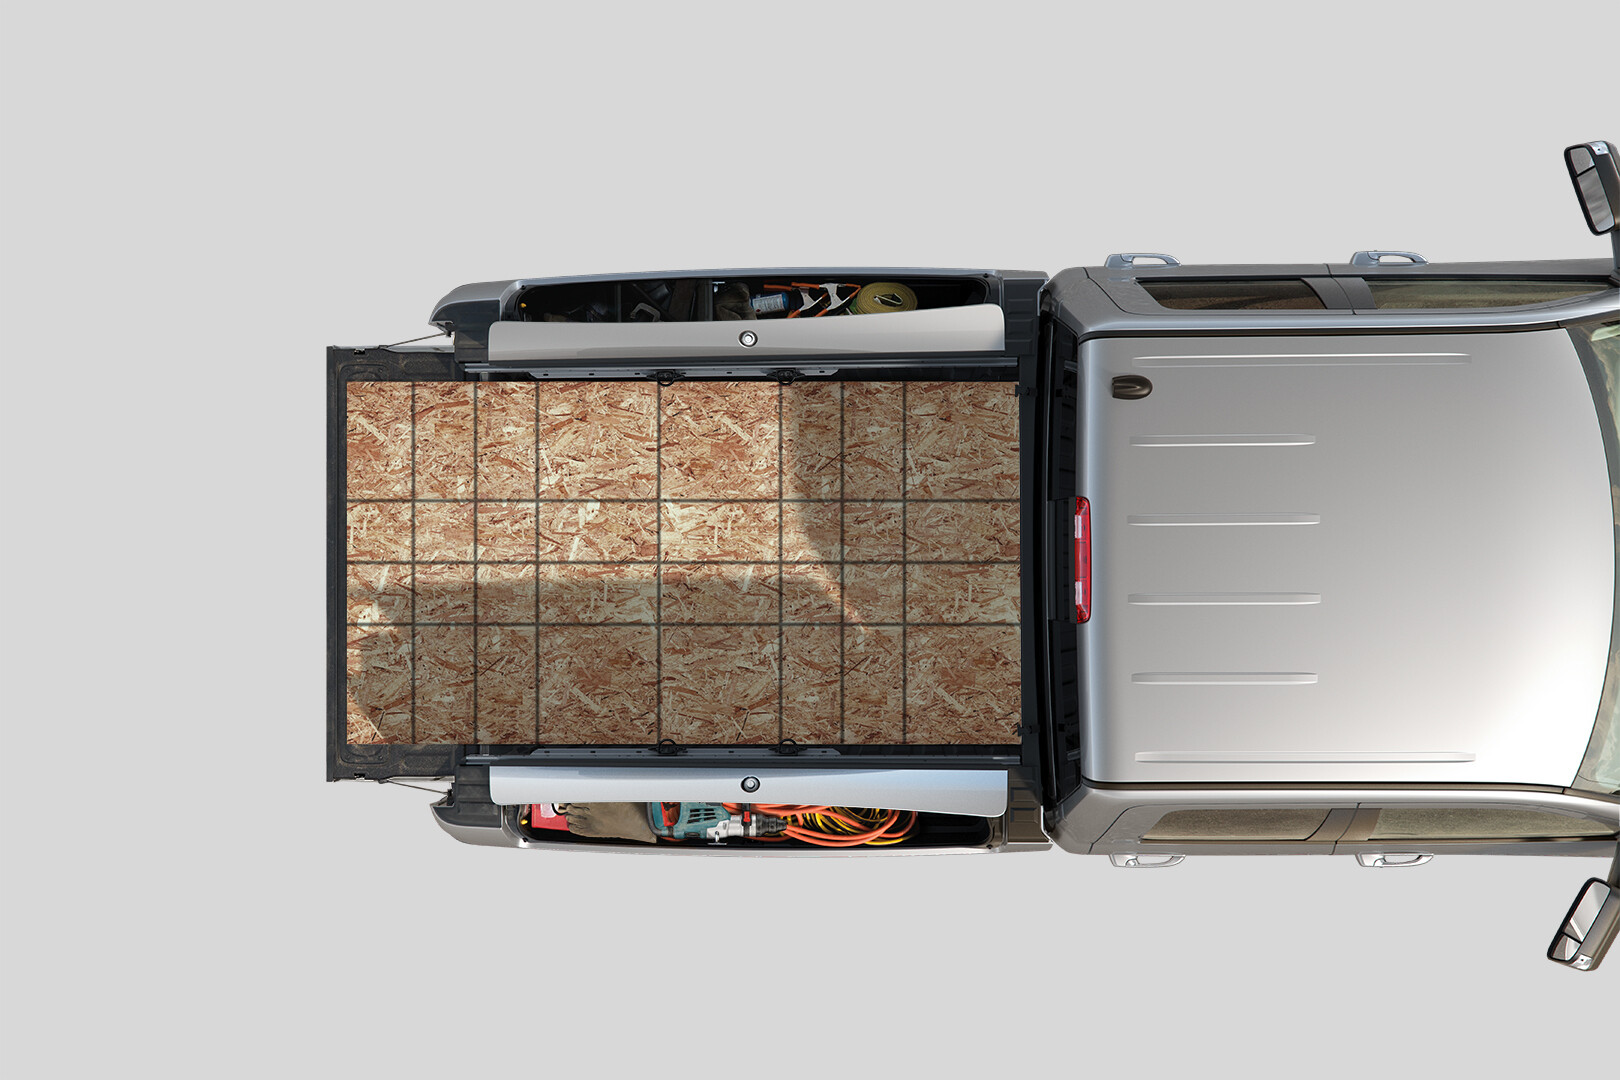 RAM 1500: Partial CG Composition